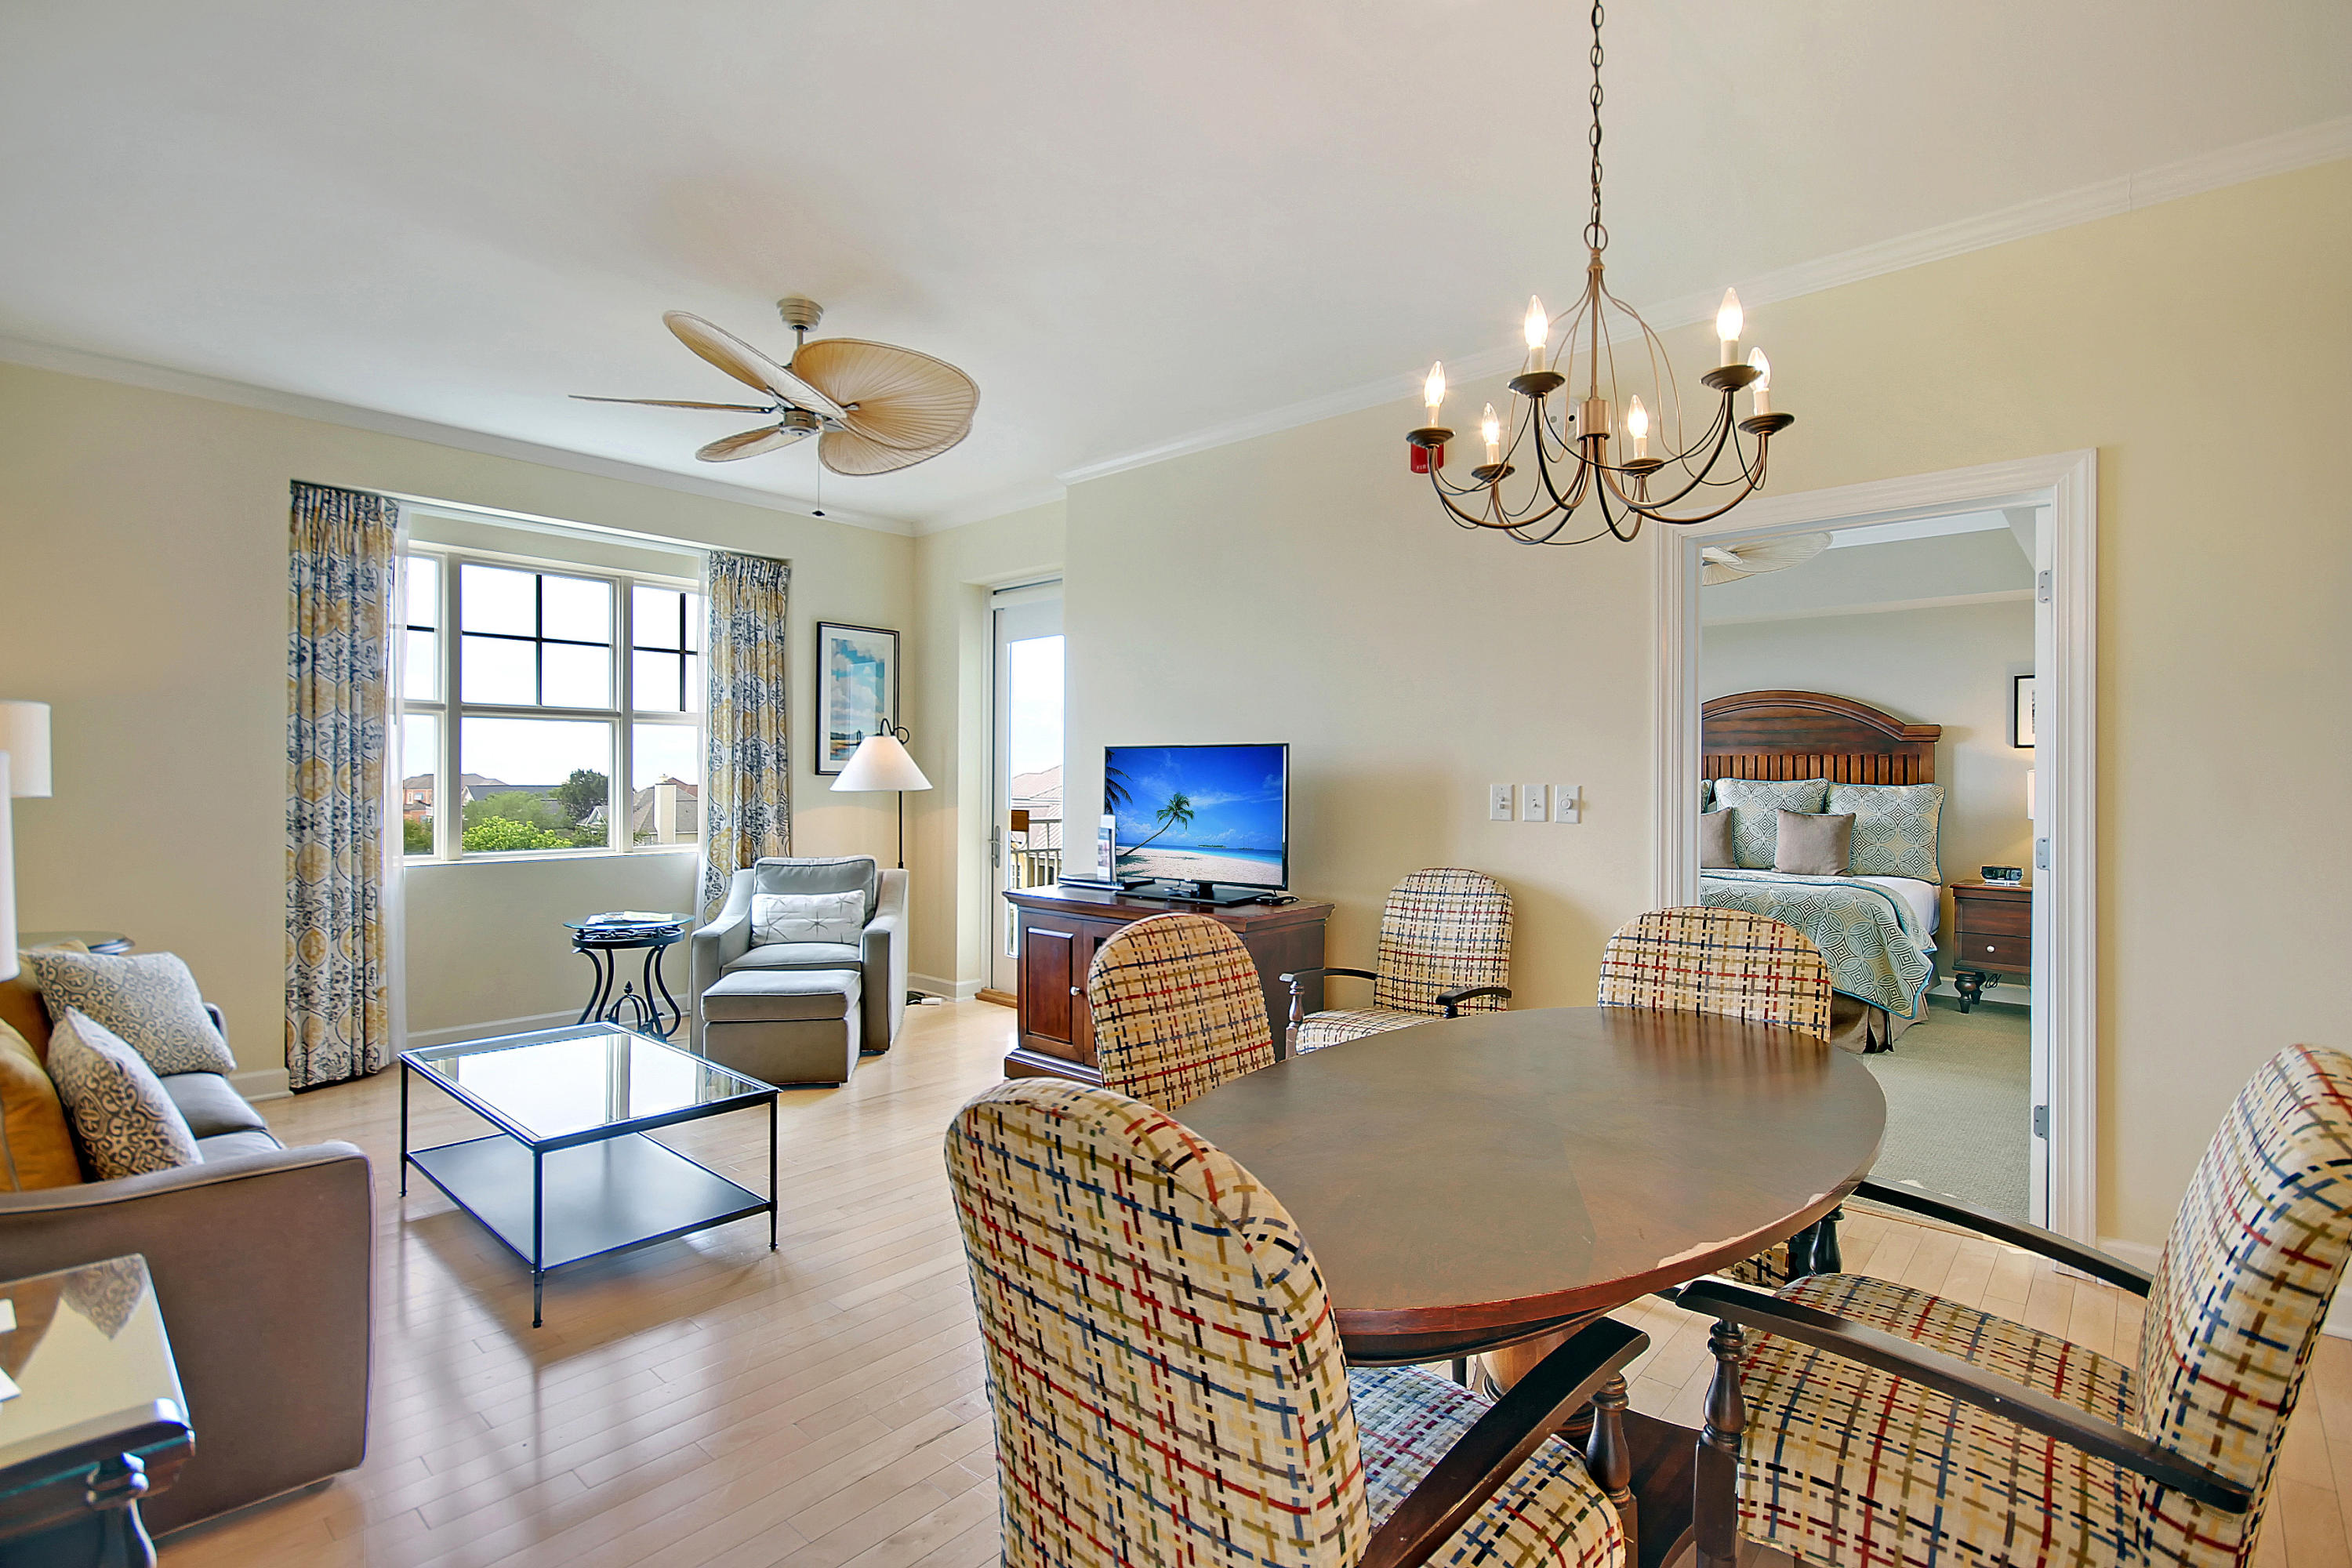 Wild Dunes Homes For Sale - 415/417-B The Village At Wild Dunes, Isle of Palms, SC - 10